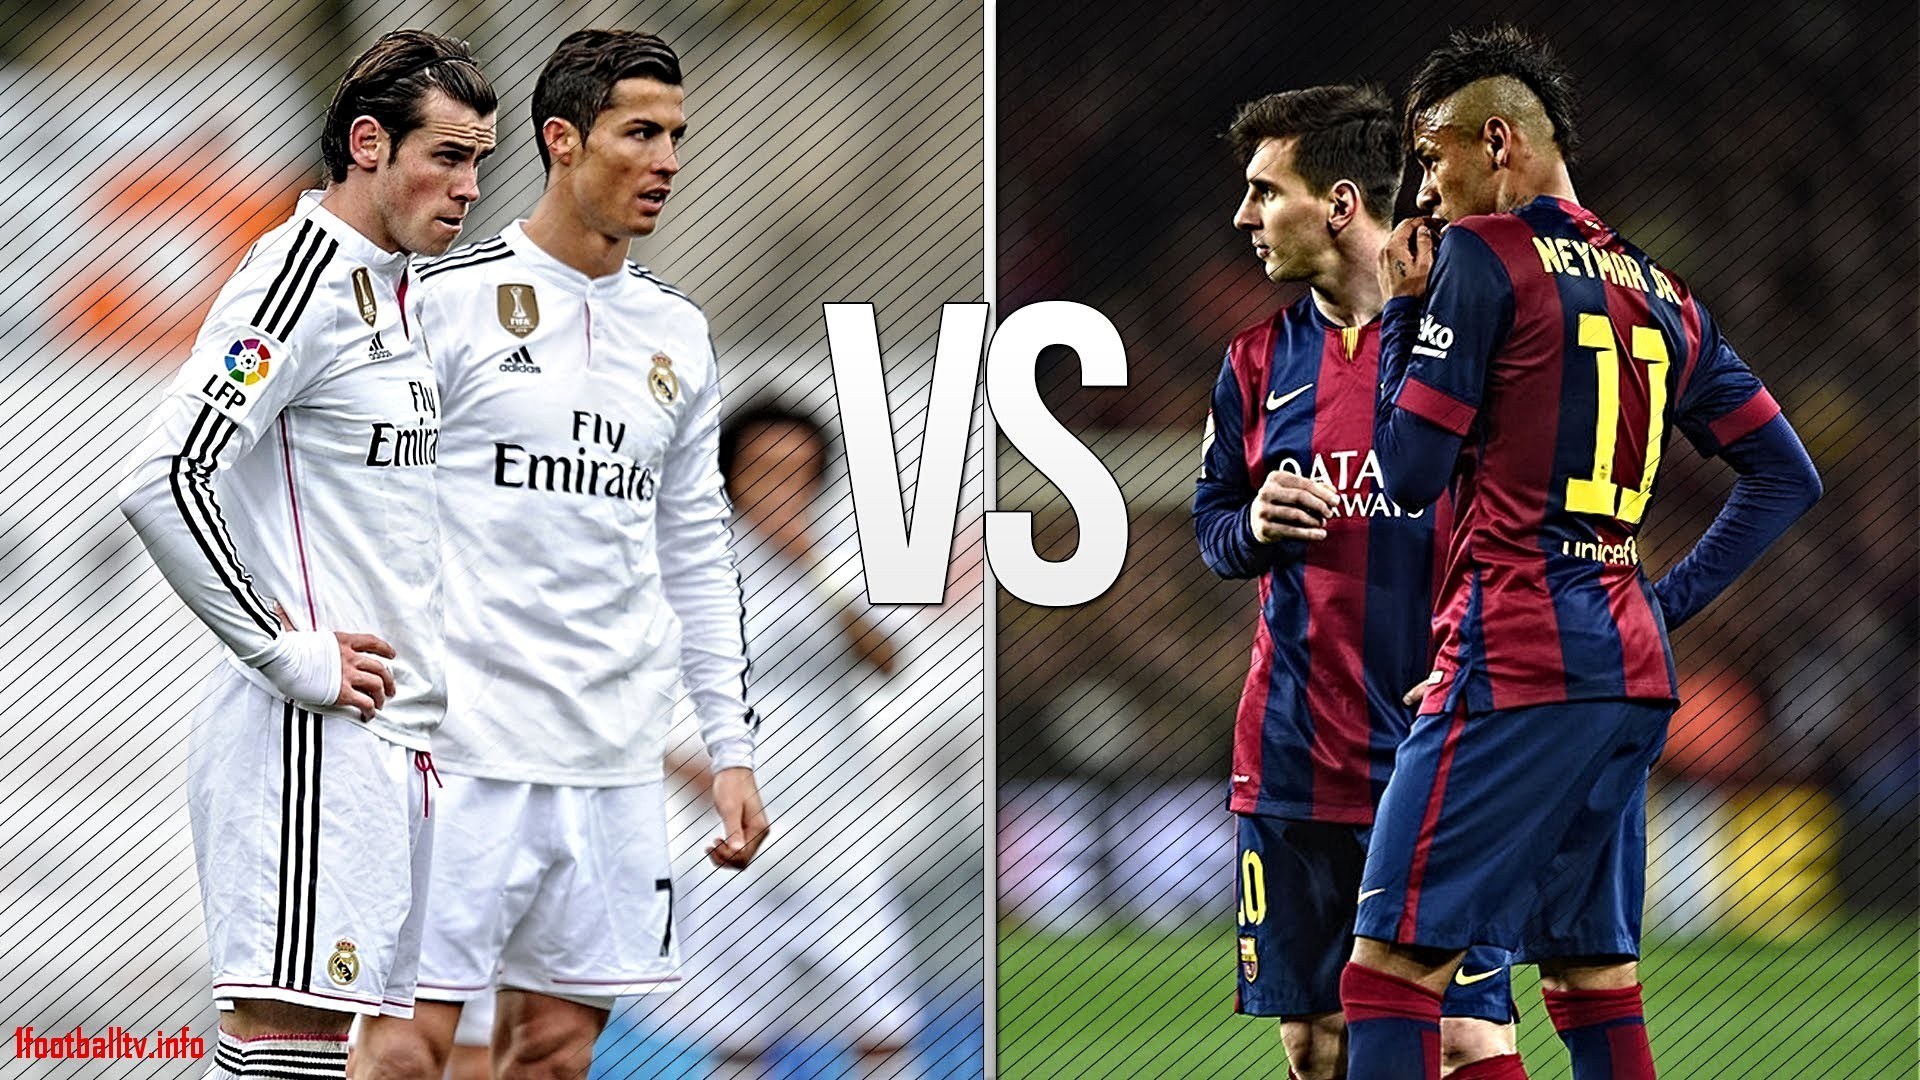 Messi Vs Ronaldo Wallpaper Posted By Ethan Sellers